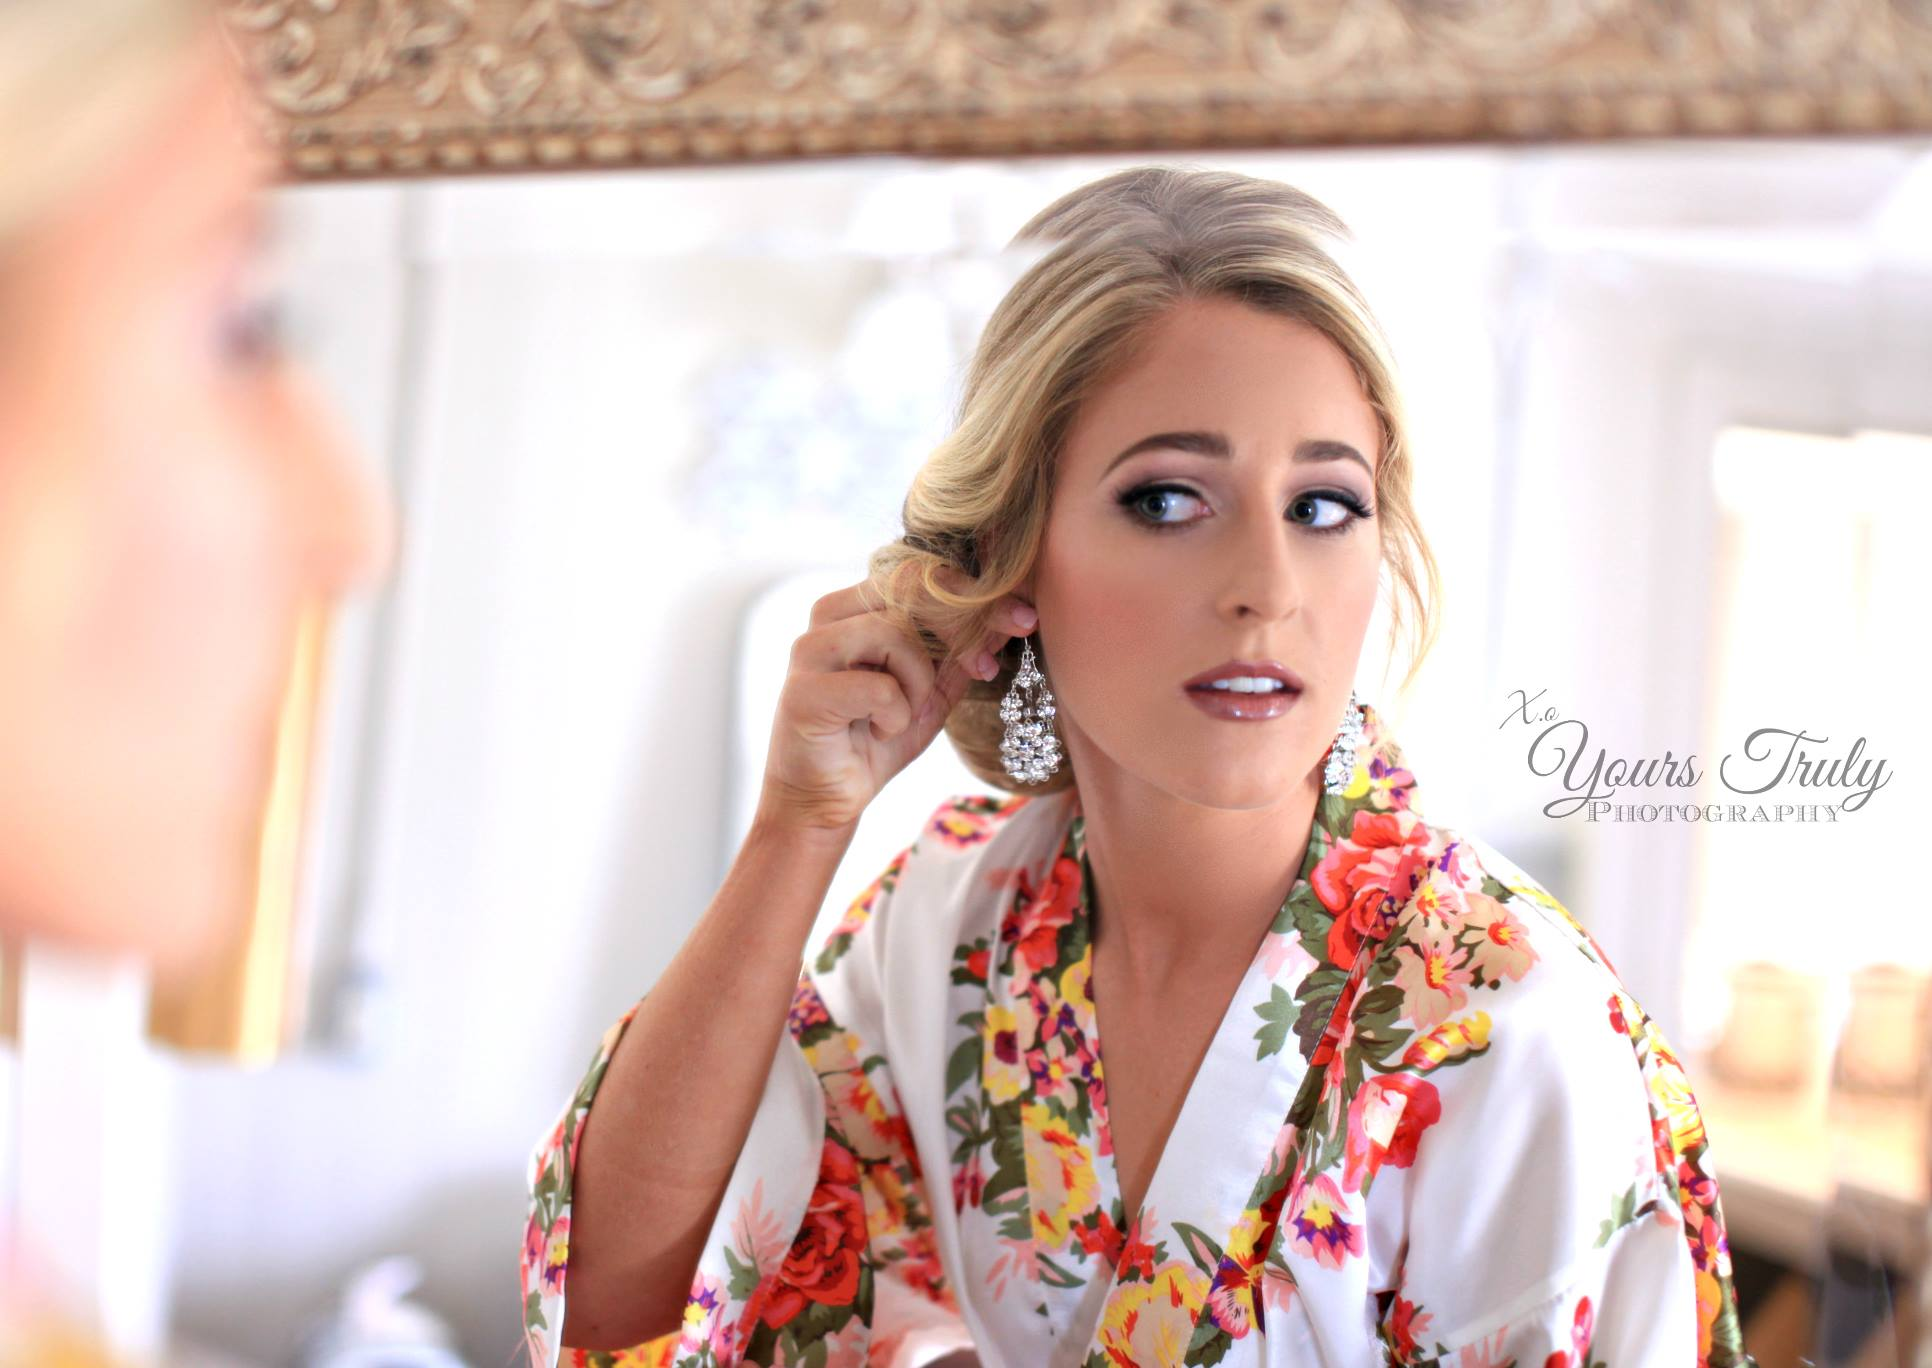 Dallas bride makeup artist lashes & lace make-up and hair weddings texas.jpg